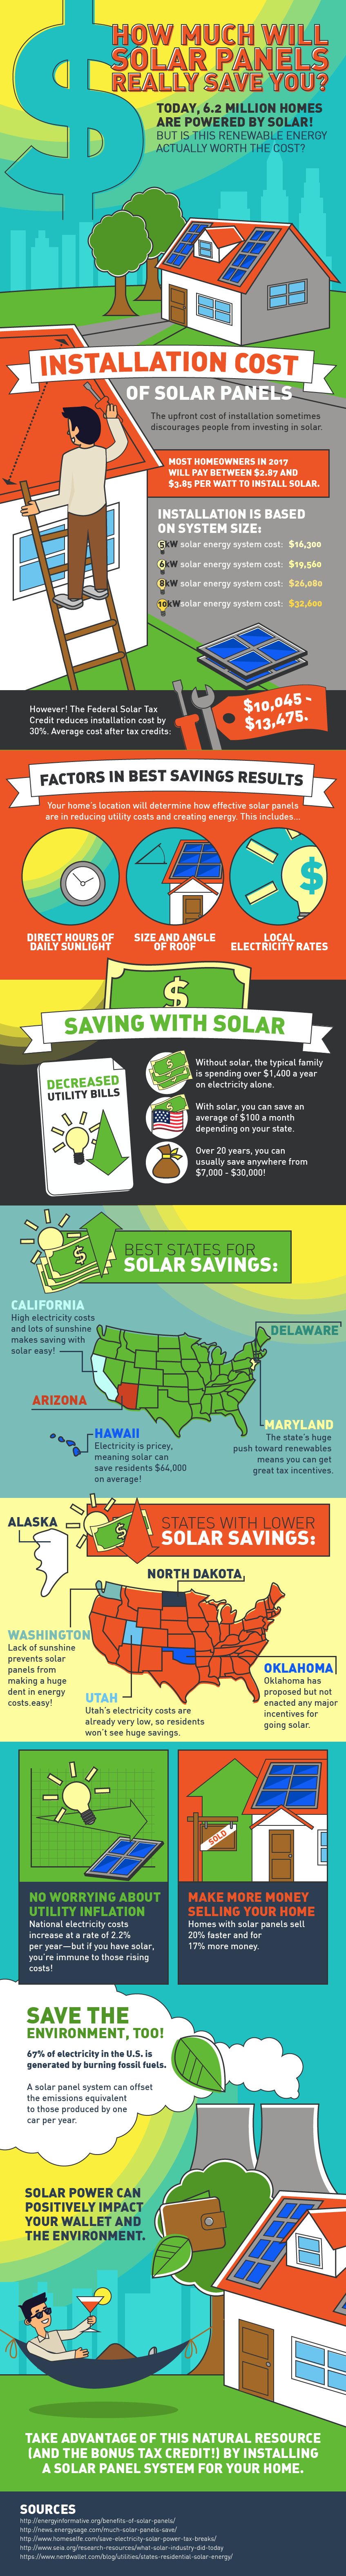 GUEST POST: Saving Energy and Our Planet Starts with Solar